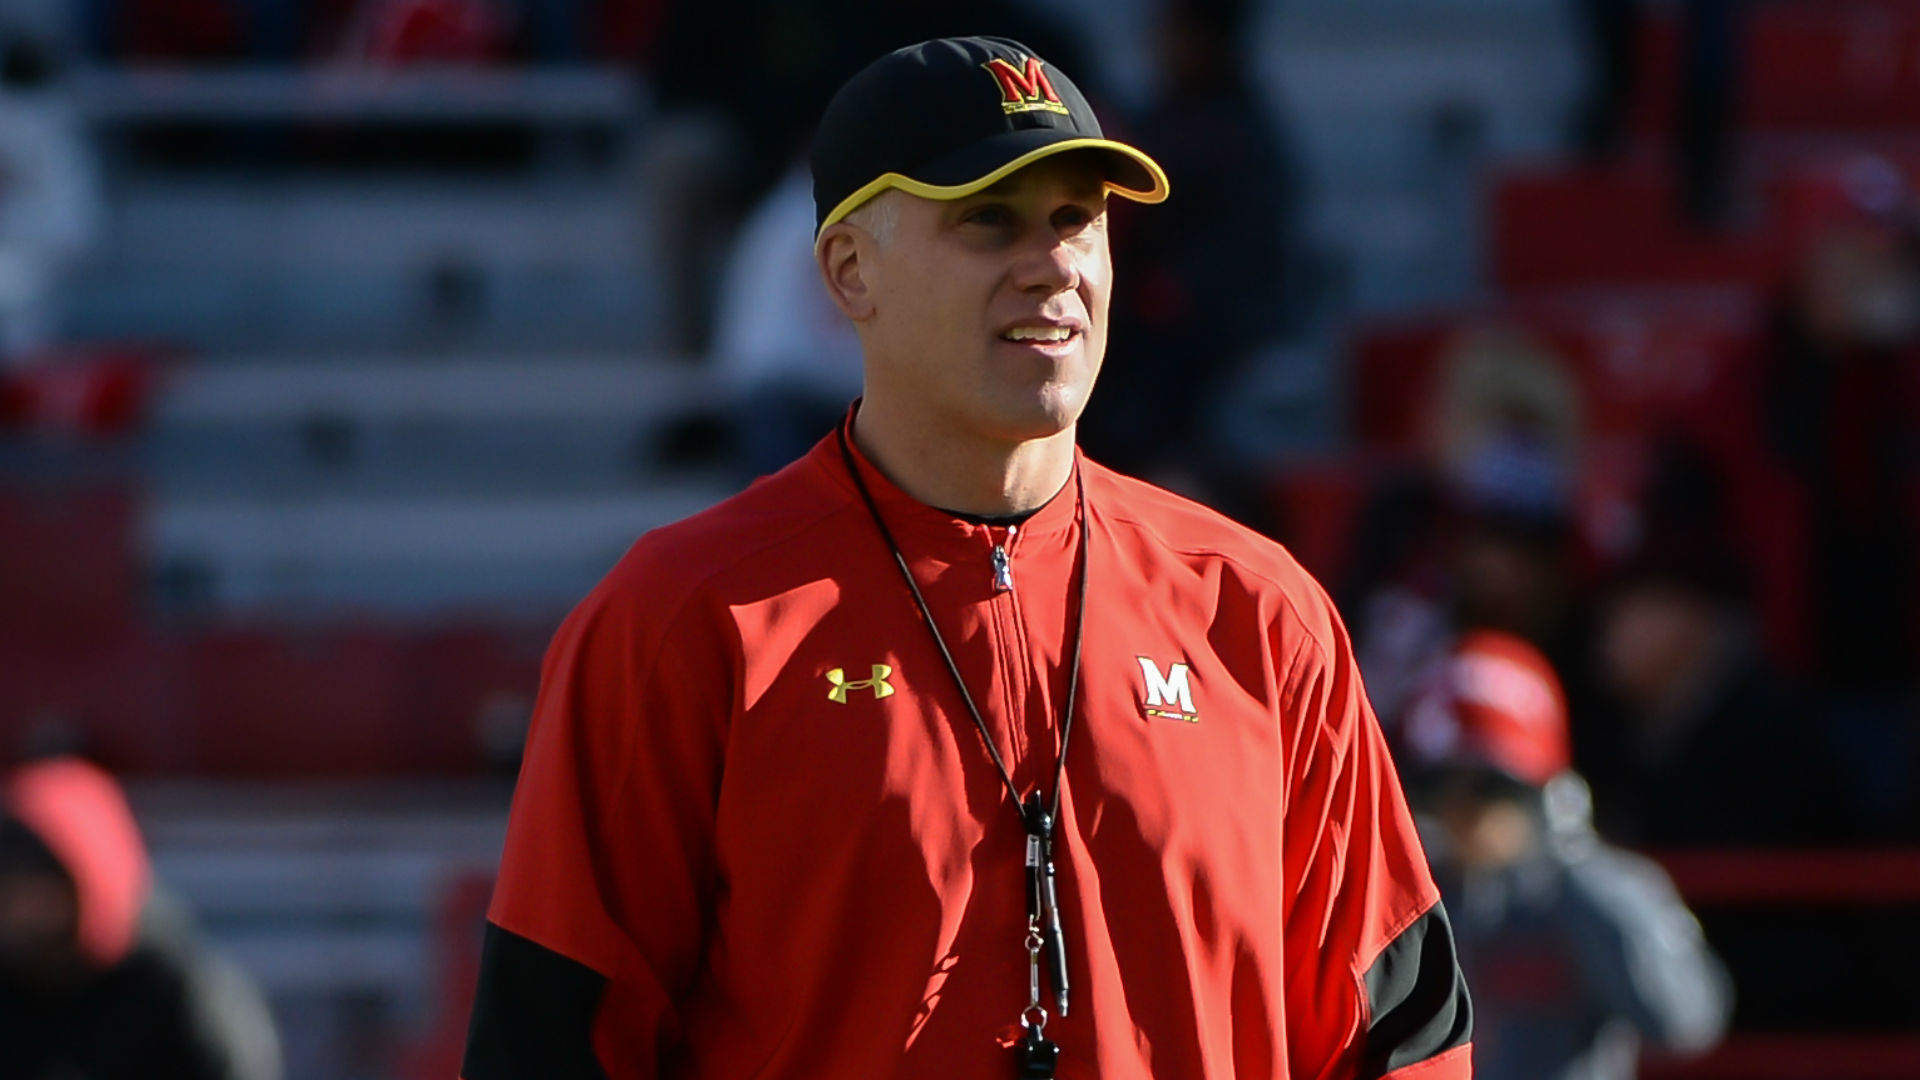 UMD football coach placed on leave following abuse allegations